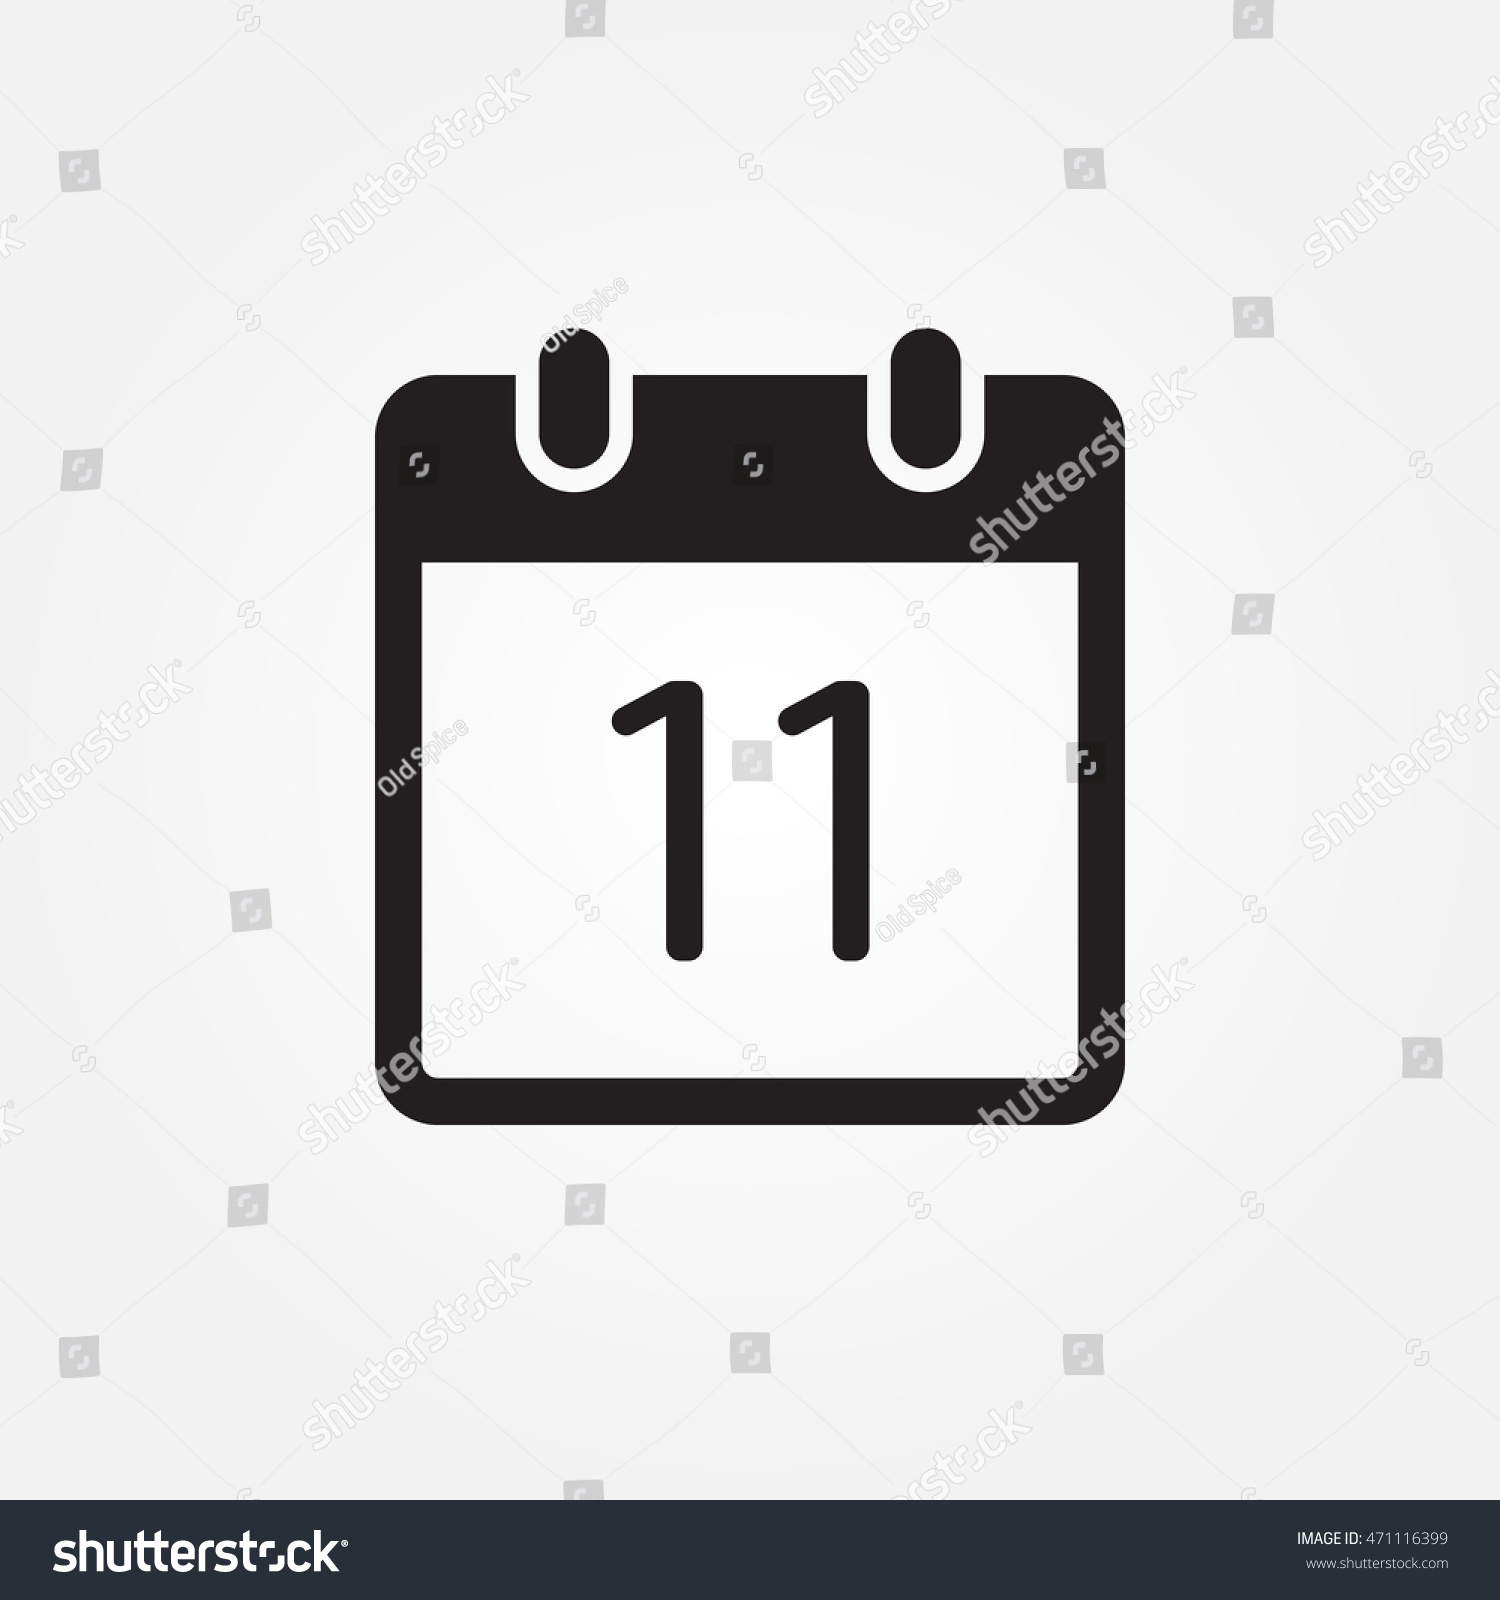 Calendar Vector Icon Stock Vector Royalty Free 471116399